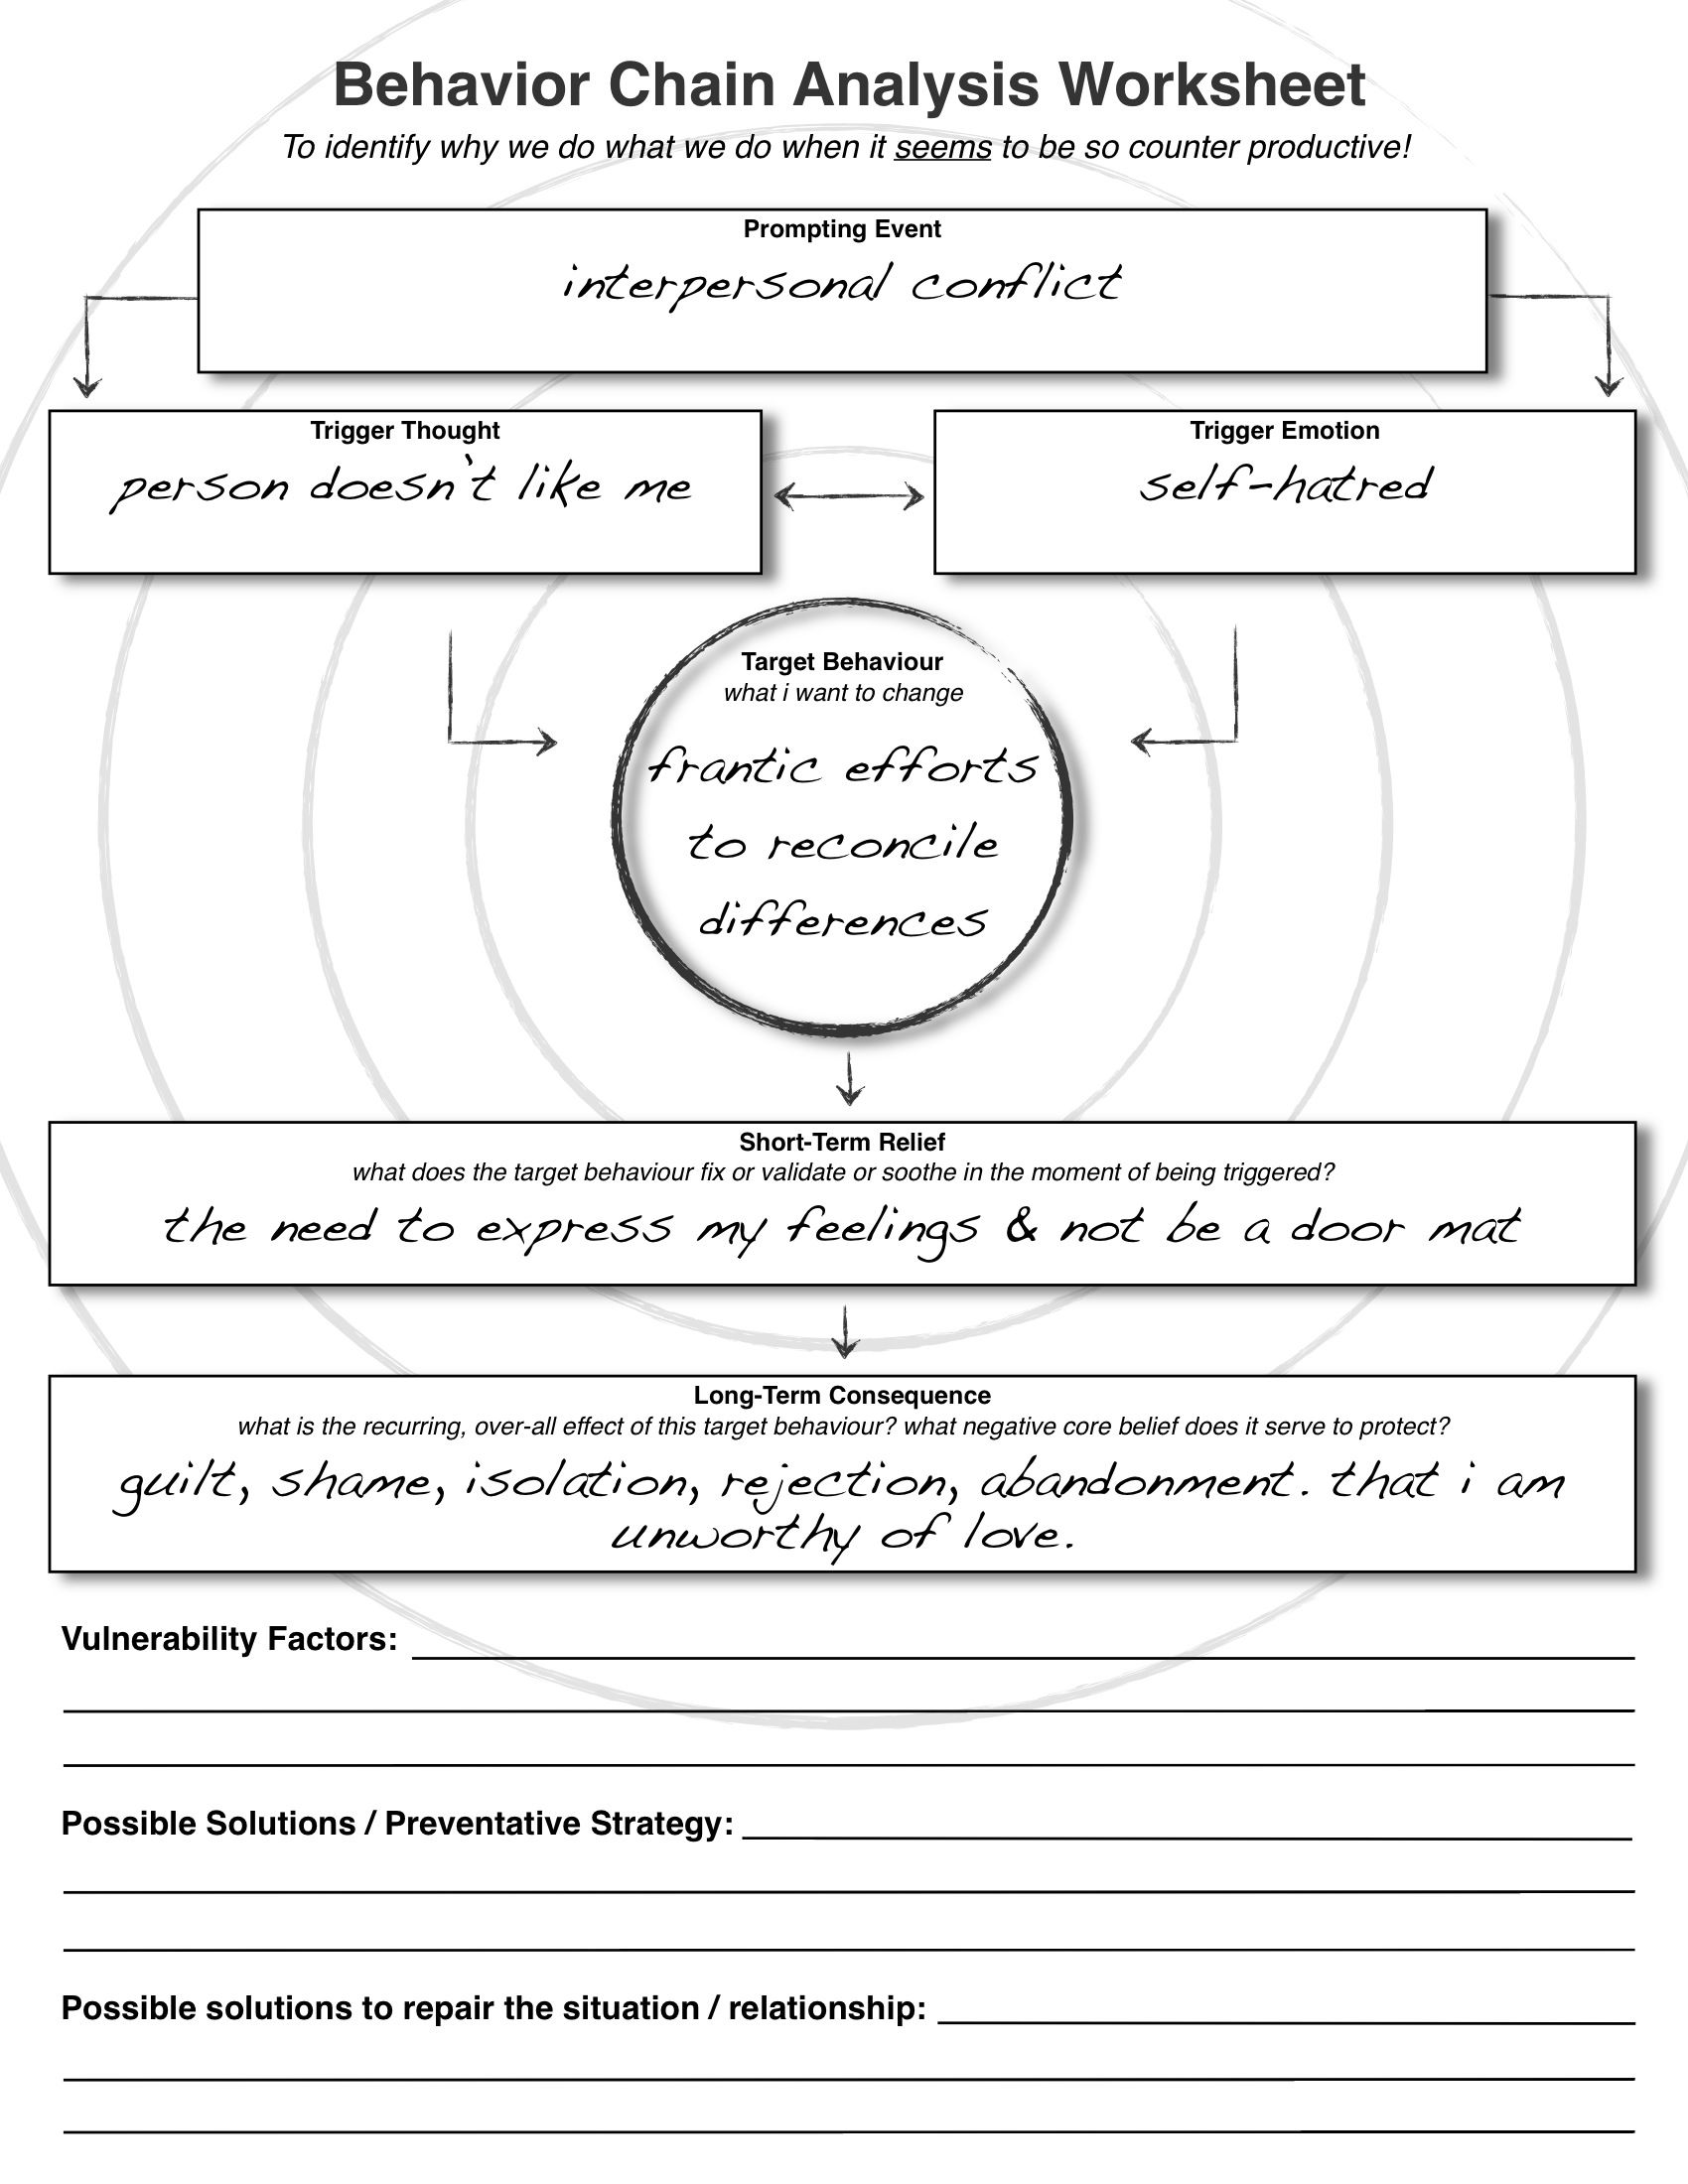 Dbt Behaviour Chainysis Worksheet